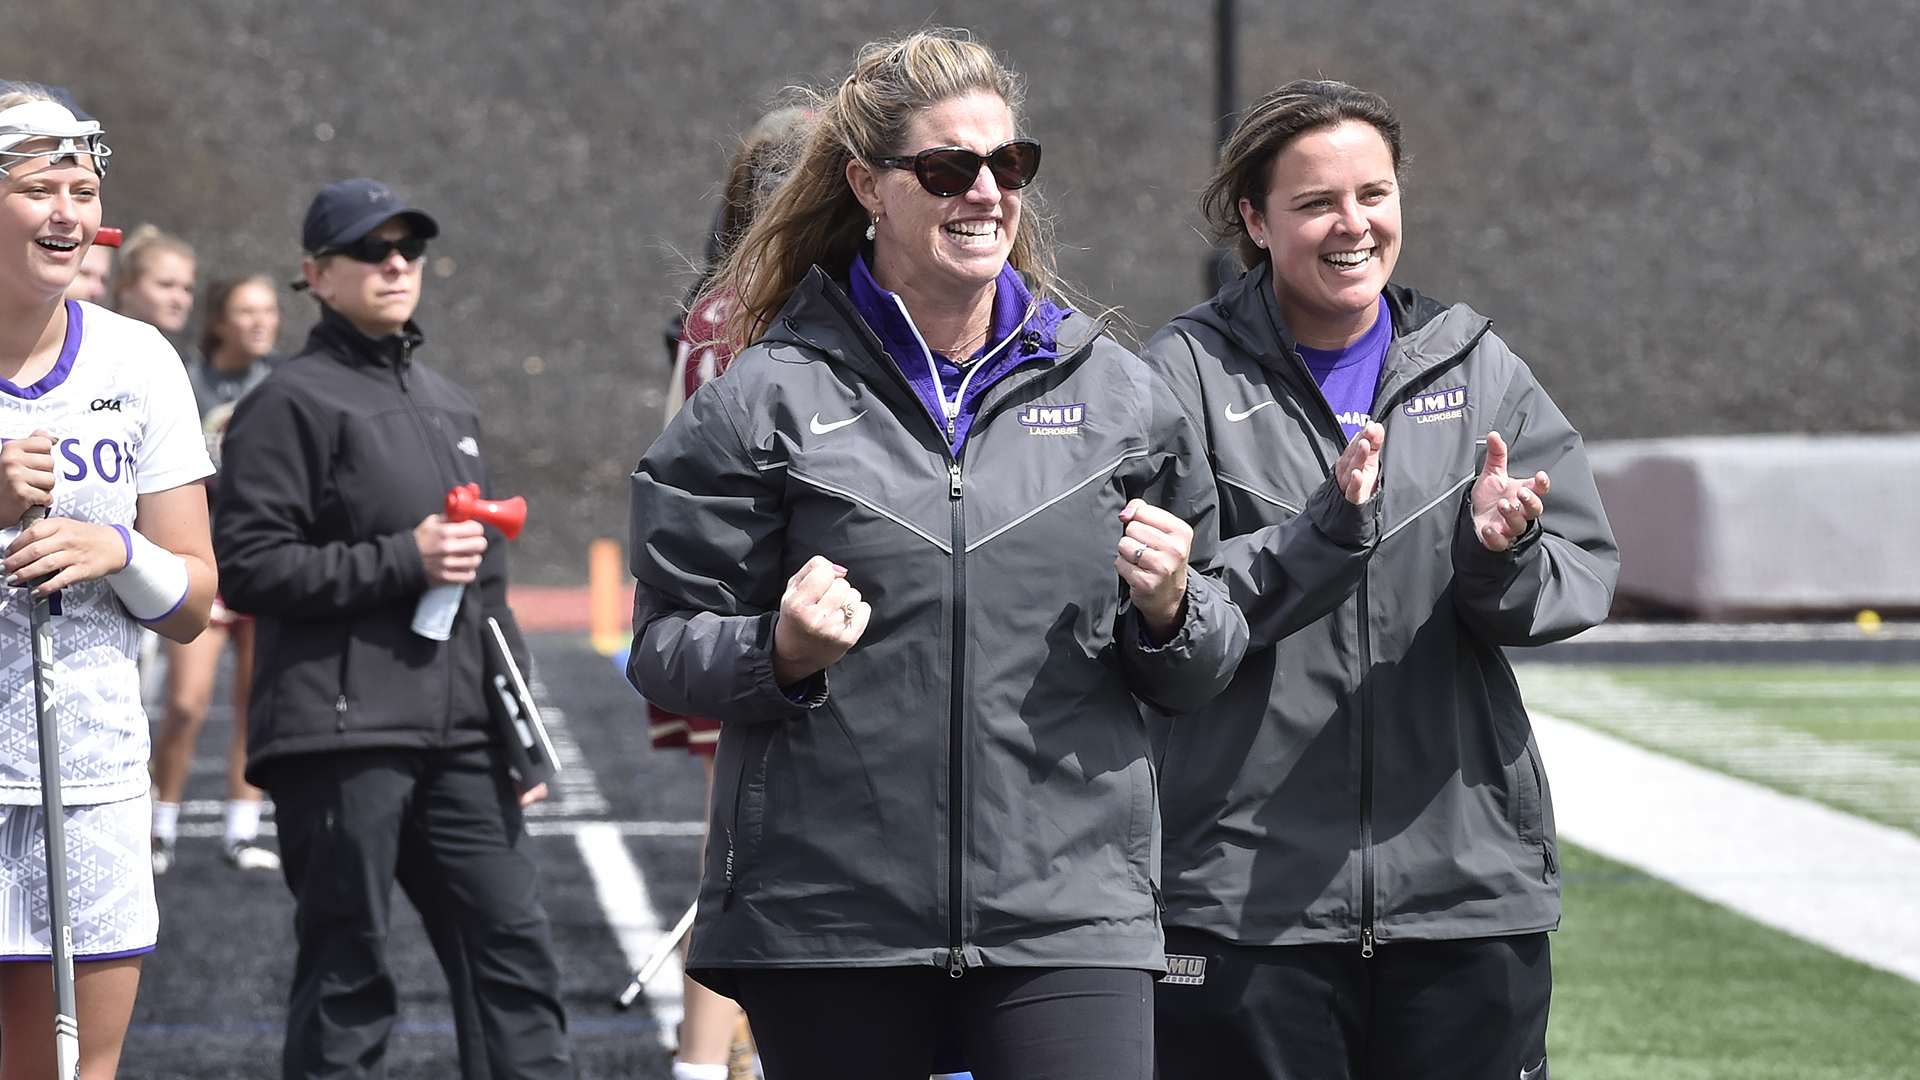 Women's Lacrosse: Klaes-Bawcombe Voted State Coach of the Year, Five Named All-State)